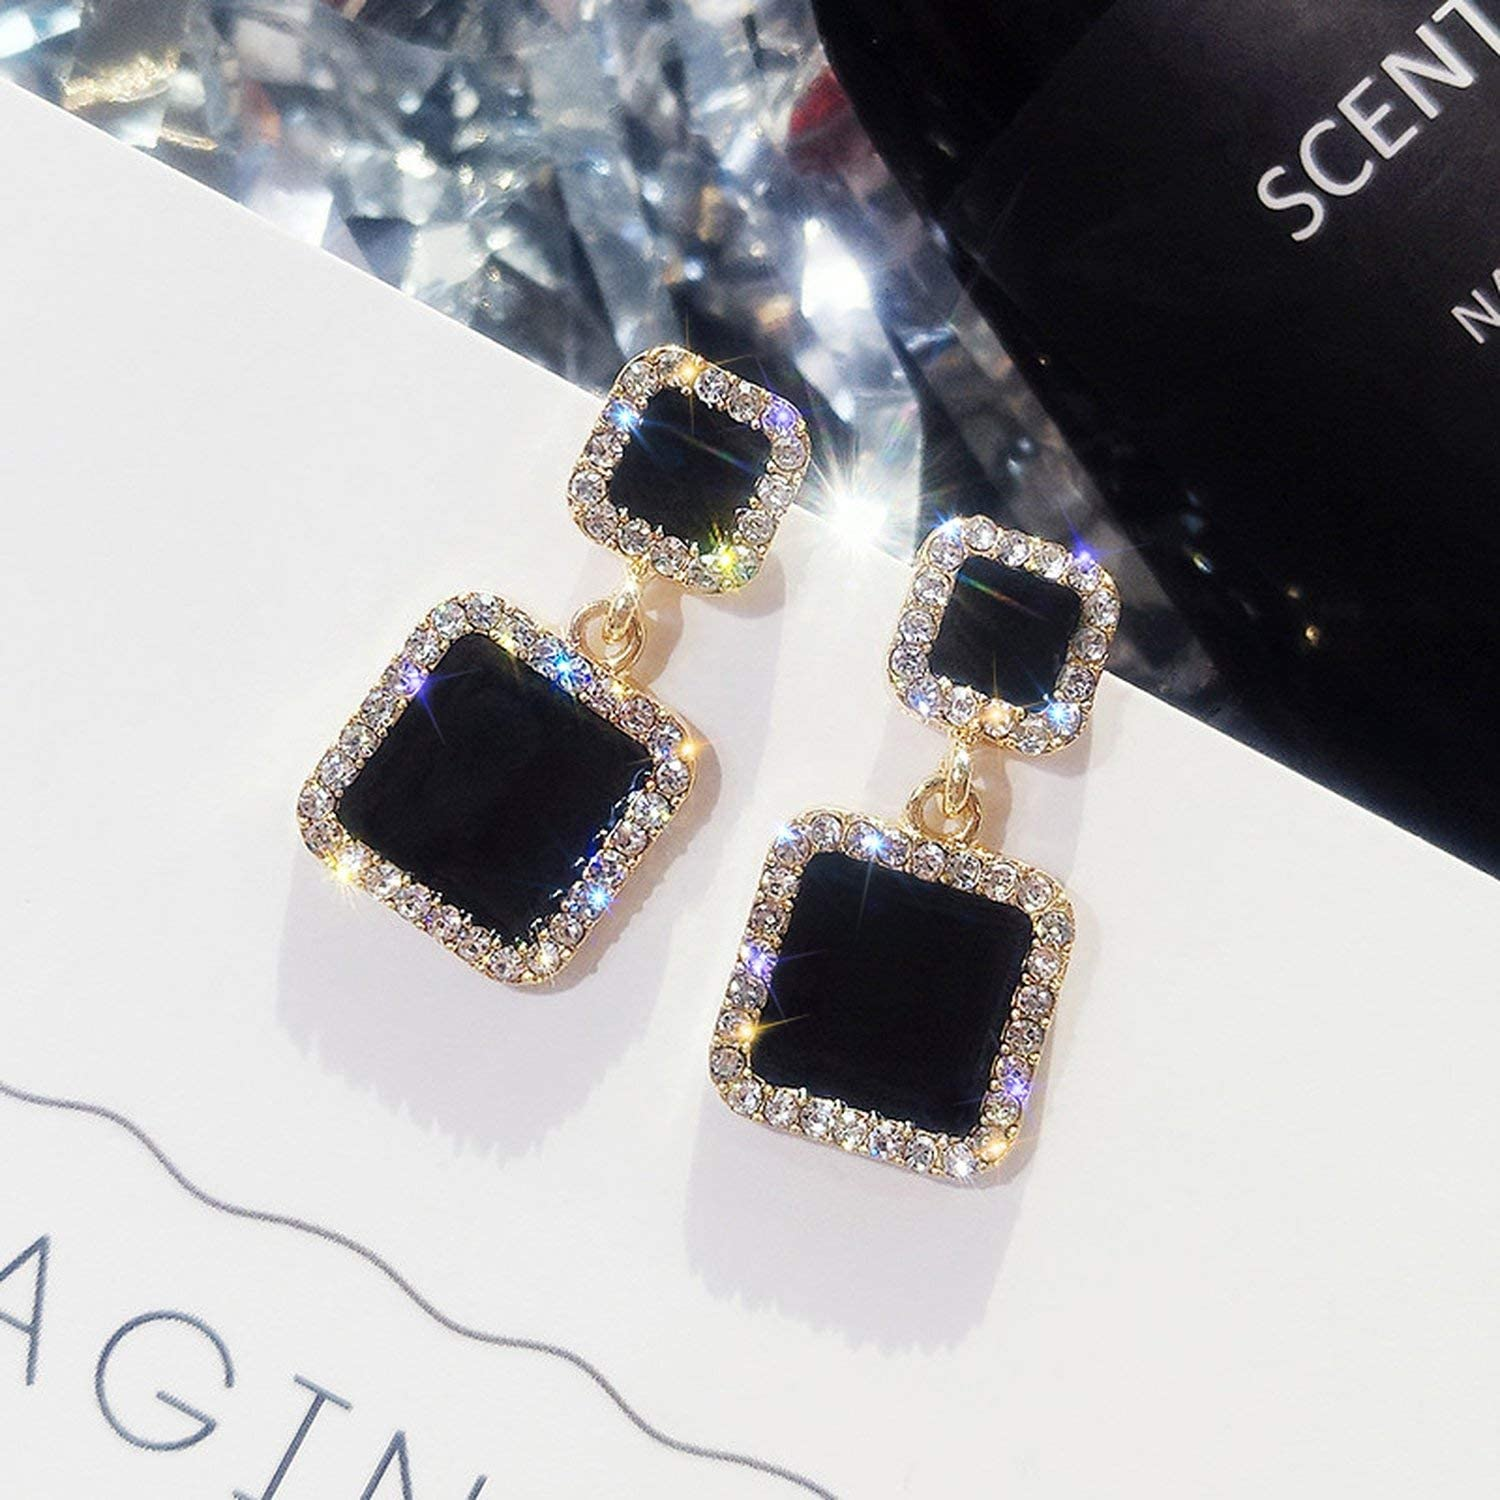 Brave Rosemary Classic Square Metal Women Stud Earrings Long Black Square Star Round Earrings Fashion Jewelry Womens Accessories E2497